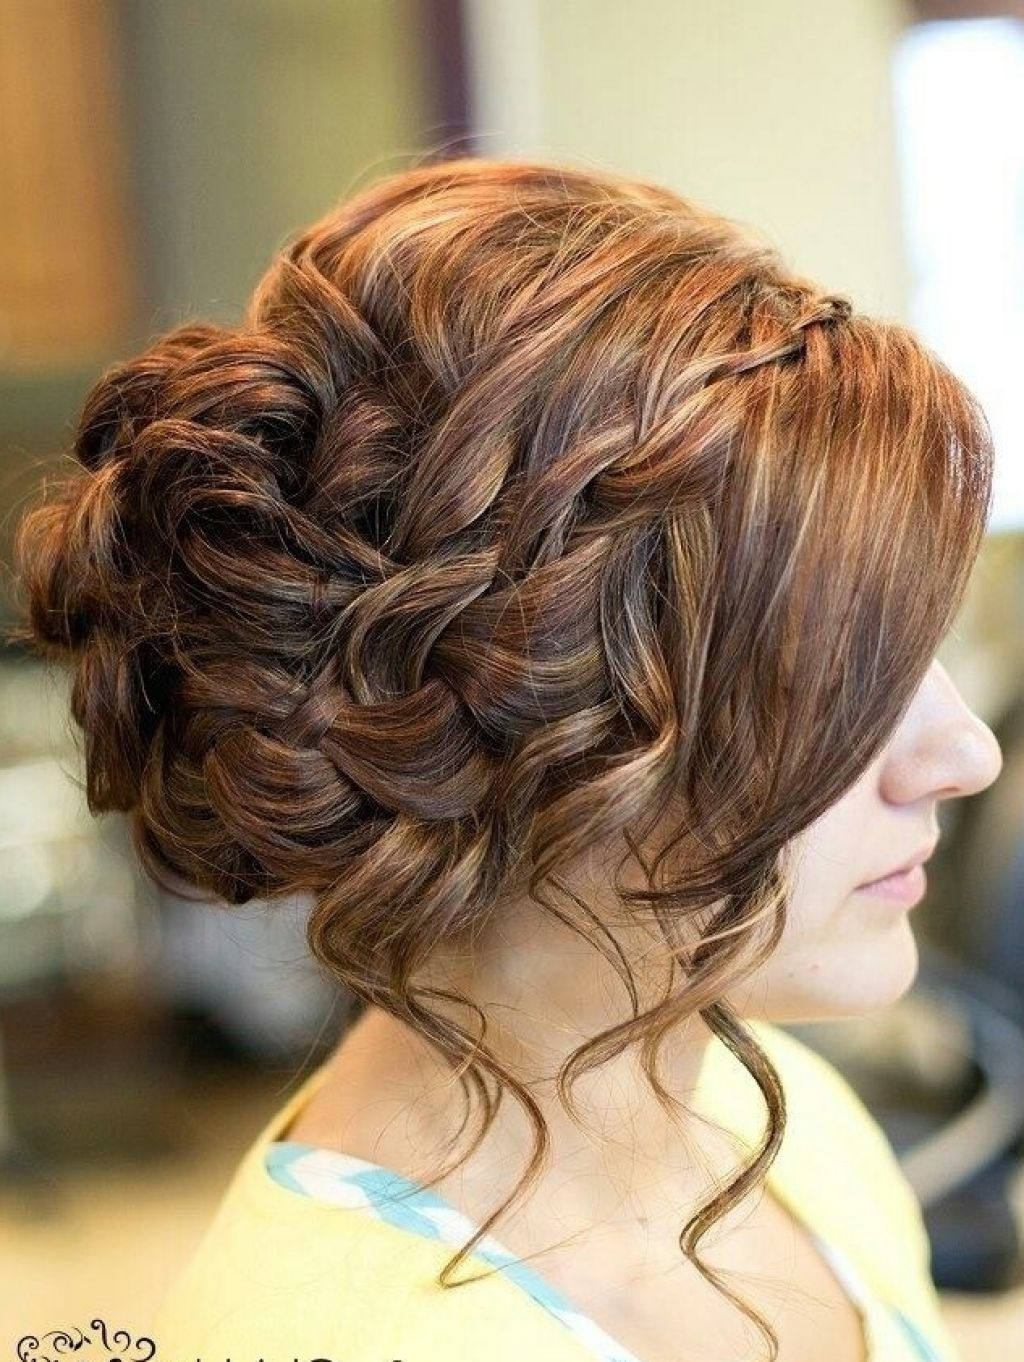 Current Side Bun Twined Prom Hairstyles With A Braid Within 14 Prom Hairstyles For Long Hair That Are Simply Adorable (View 8 of 20)